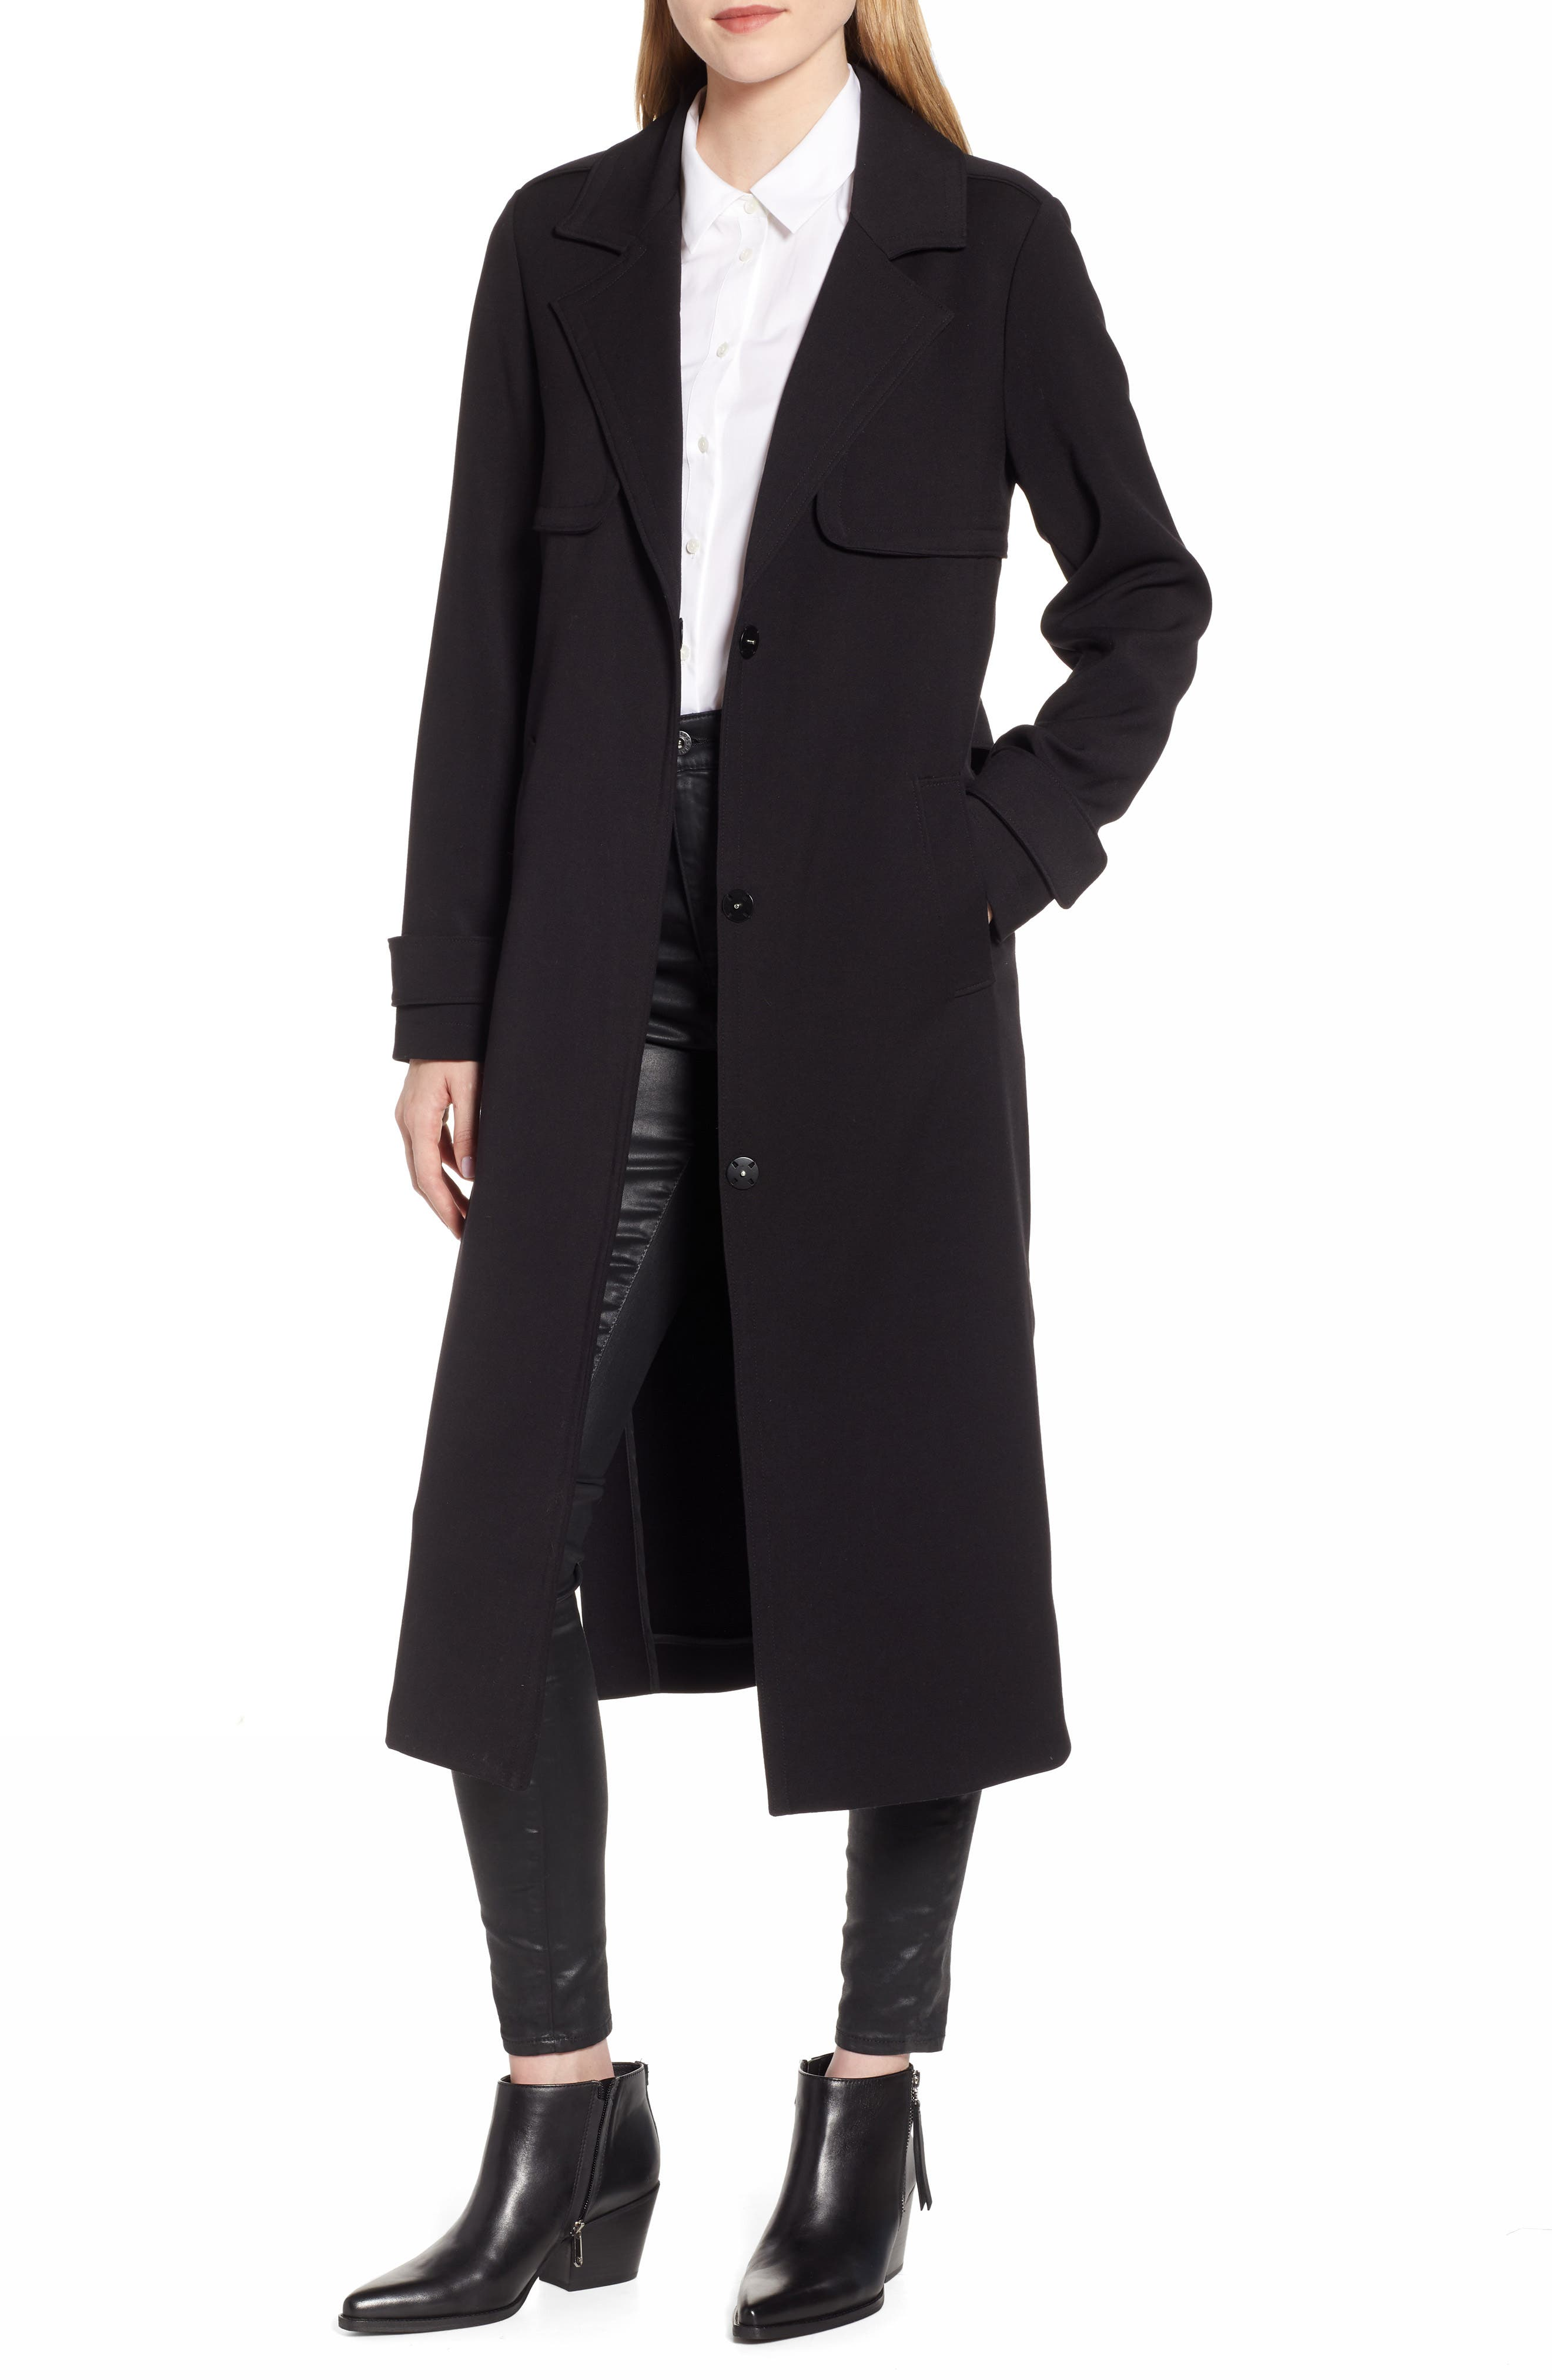 KENNETH COLE NEW YORK, Ponte Trench Coat, Main thumbnail 1, color, BLACK